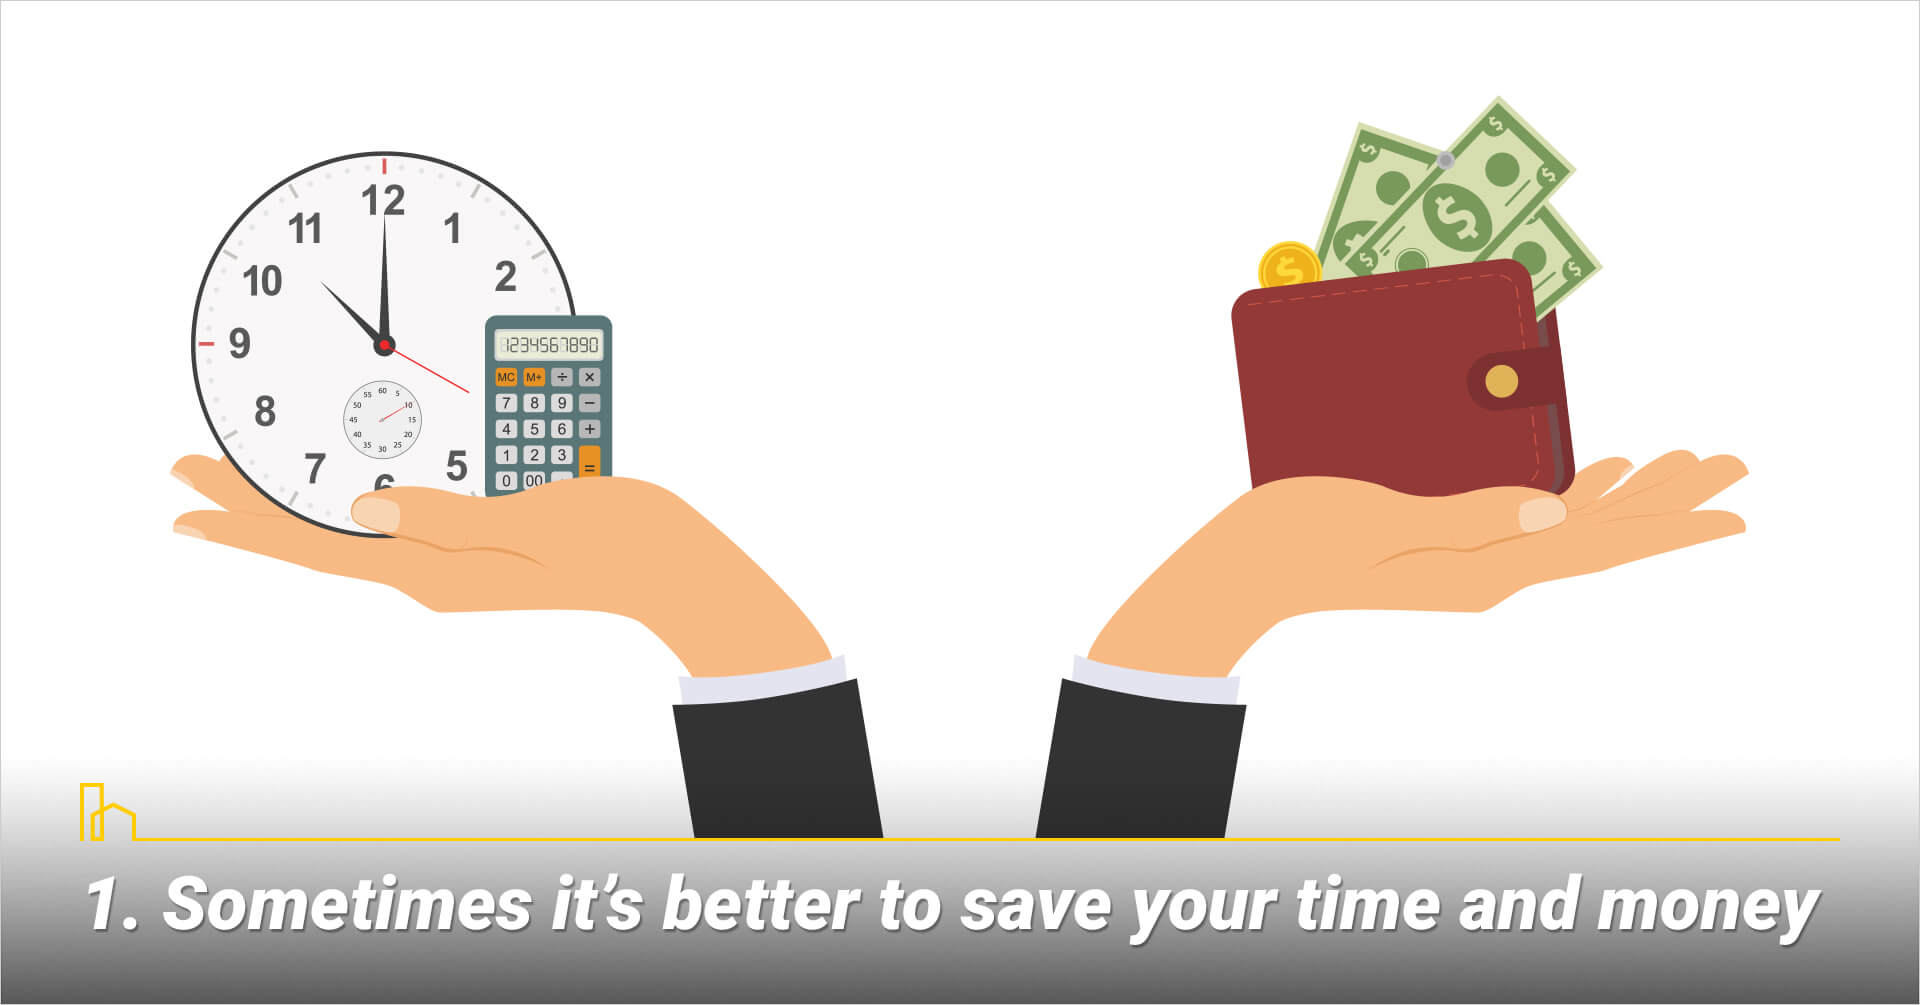 Sometimes it's better to save your time and money, saving your resources